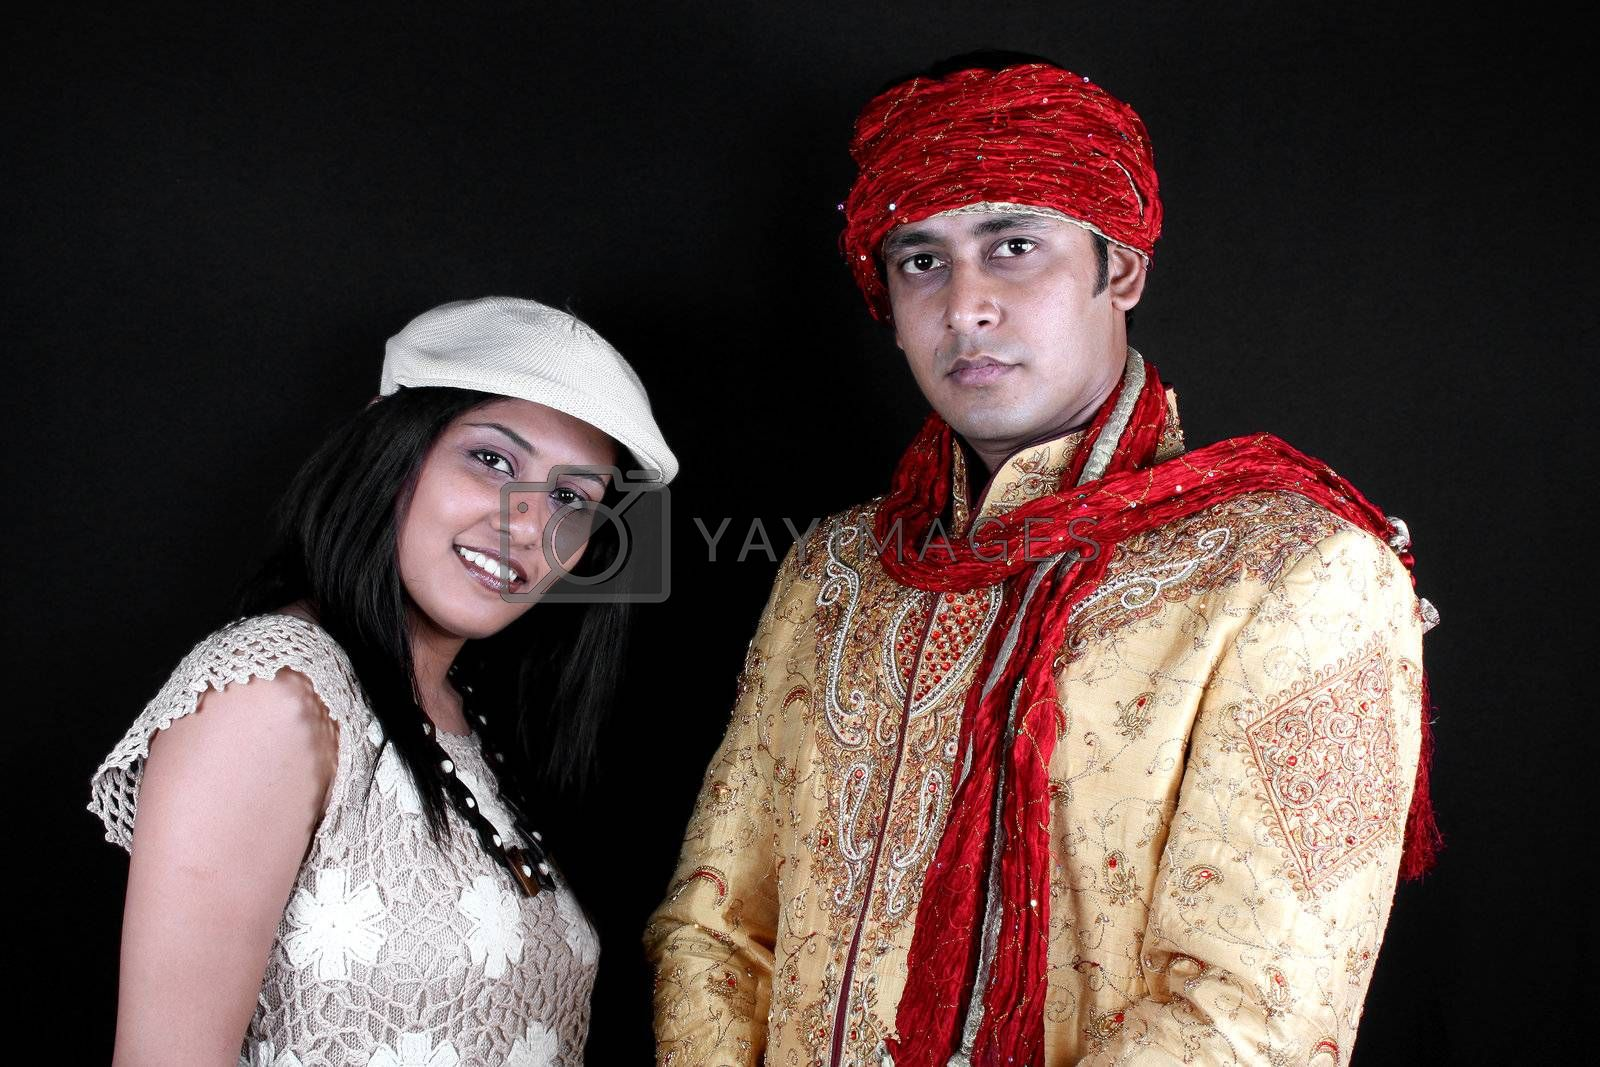 A young Indian man and woman wearing clothes of diverse fashion.